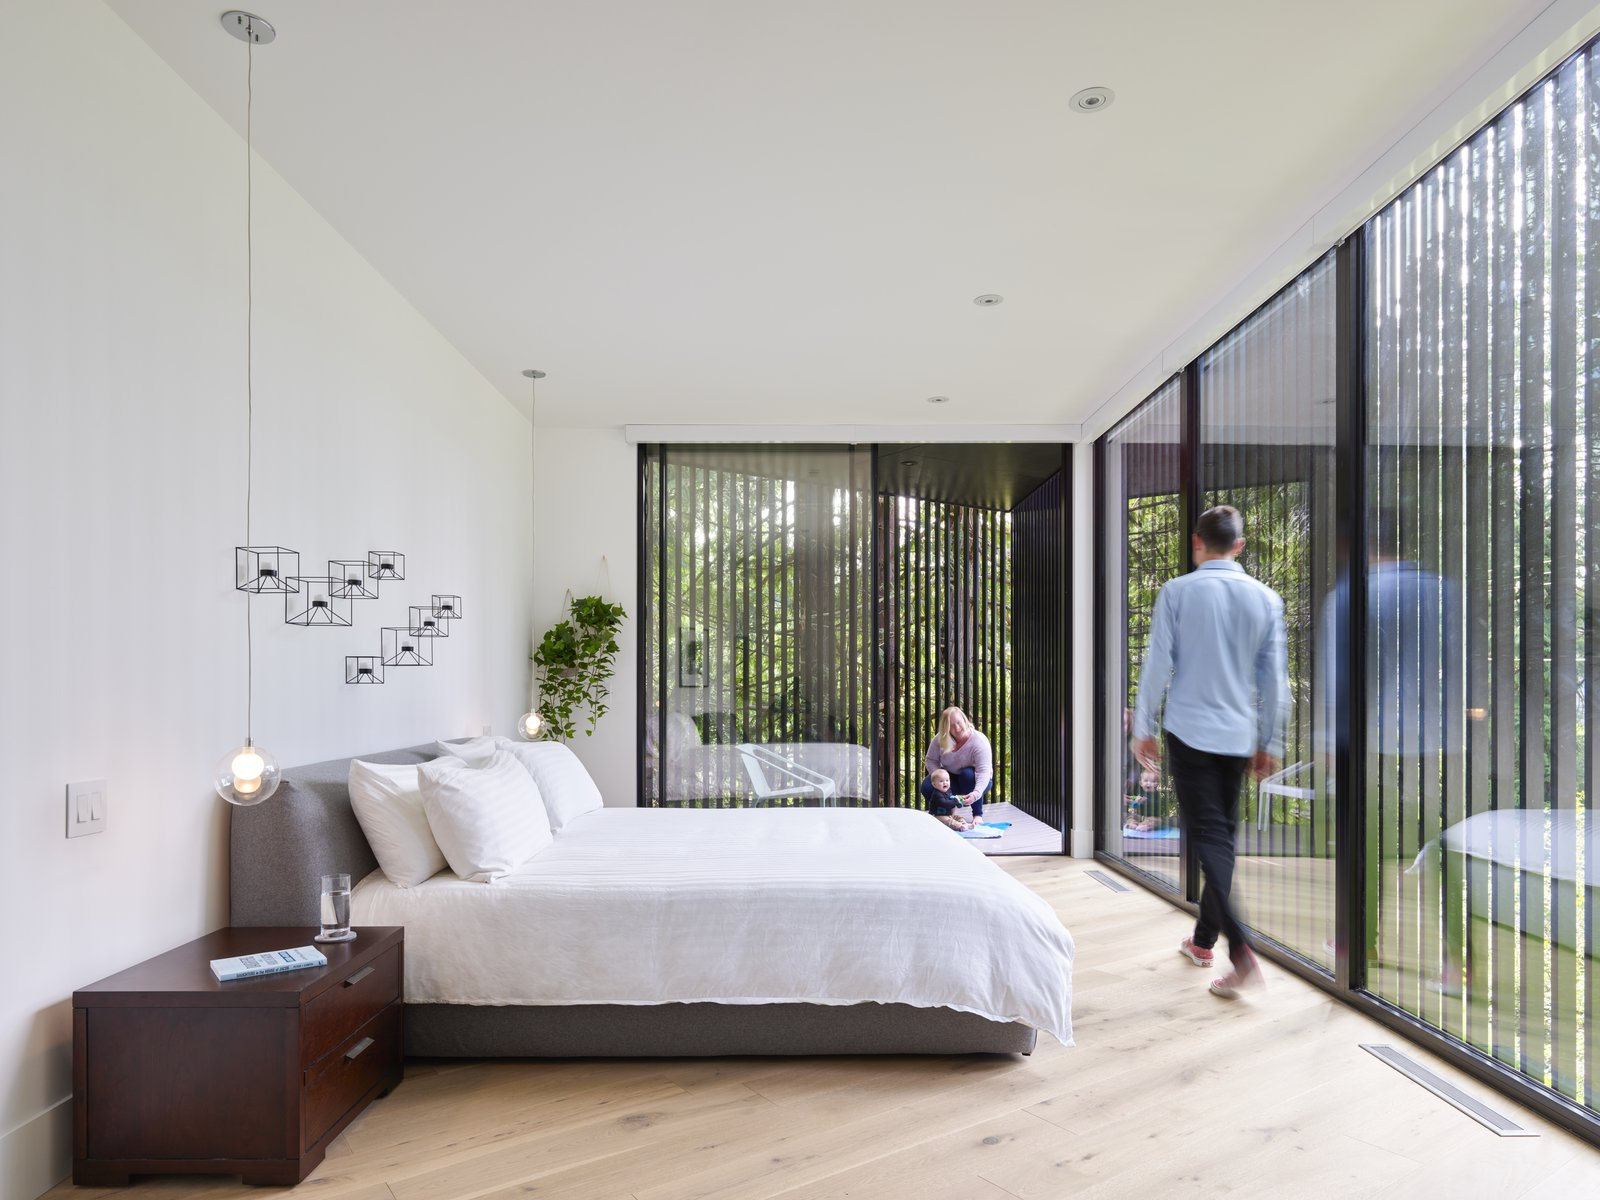 The master bedroom retains a feeling of privacy despite looking out at the street, thanks to a series of slatted wood screens over the floor-to-ceiling glass. The bedroom cantilevers over a ravine to include a small private outdoor deck.